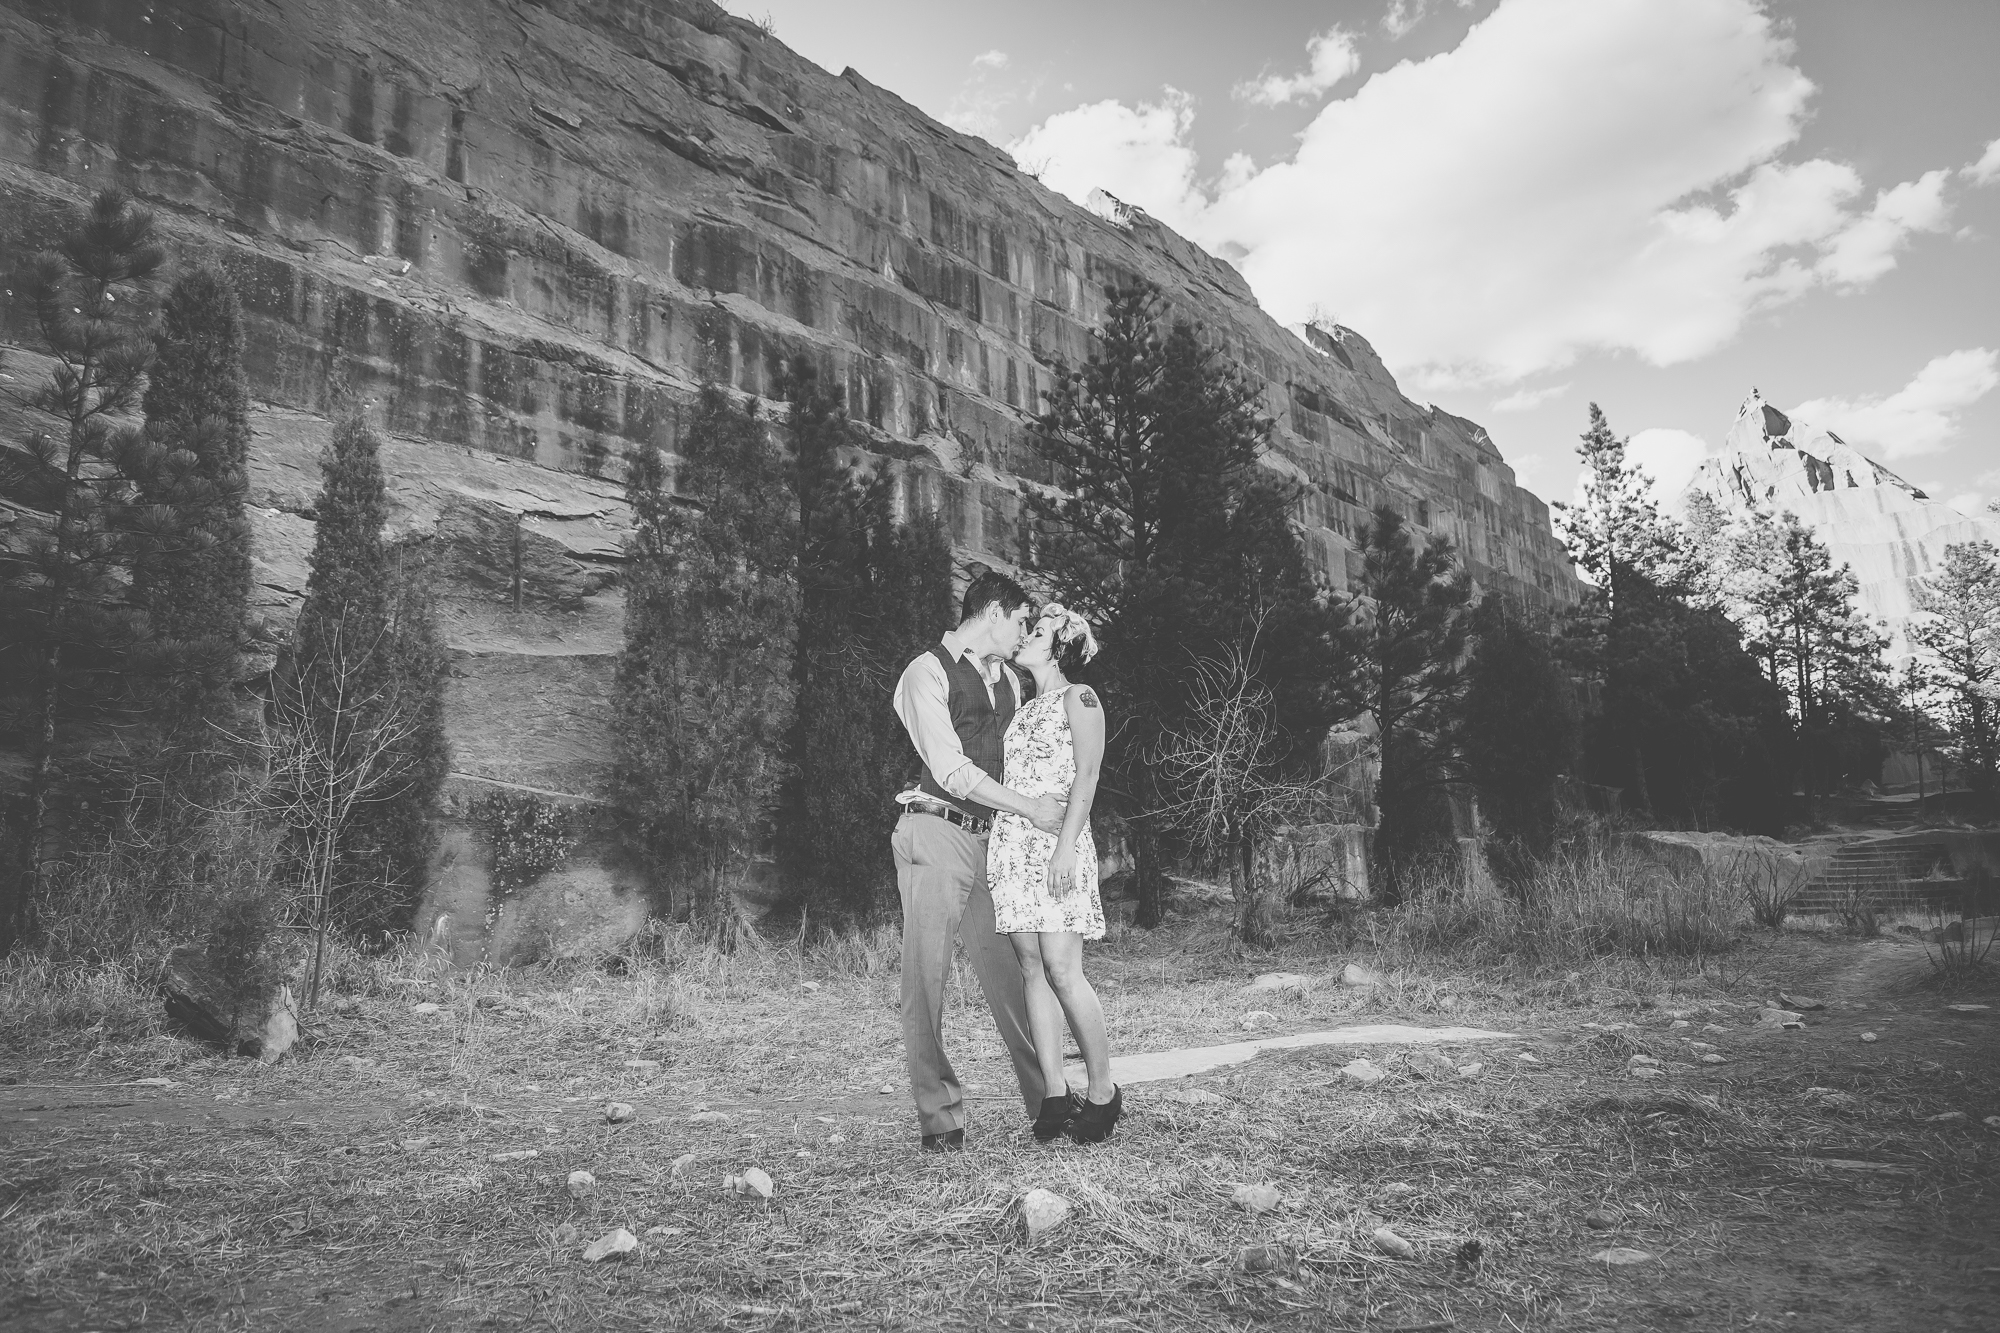 Wes_Ryan_Photography-karina-engagement_6412.jpg